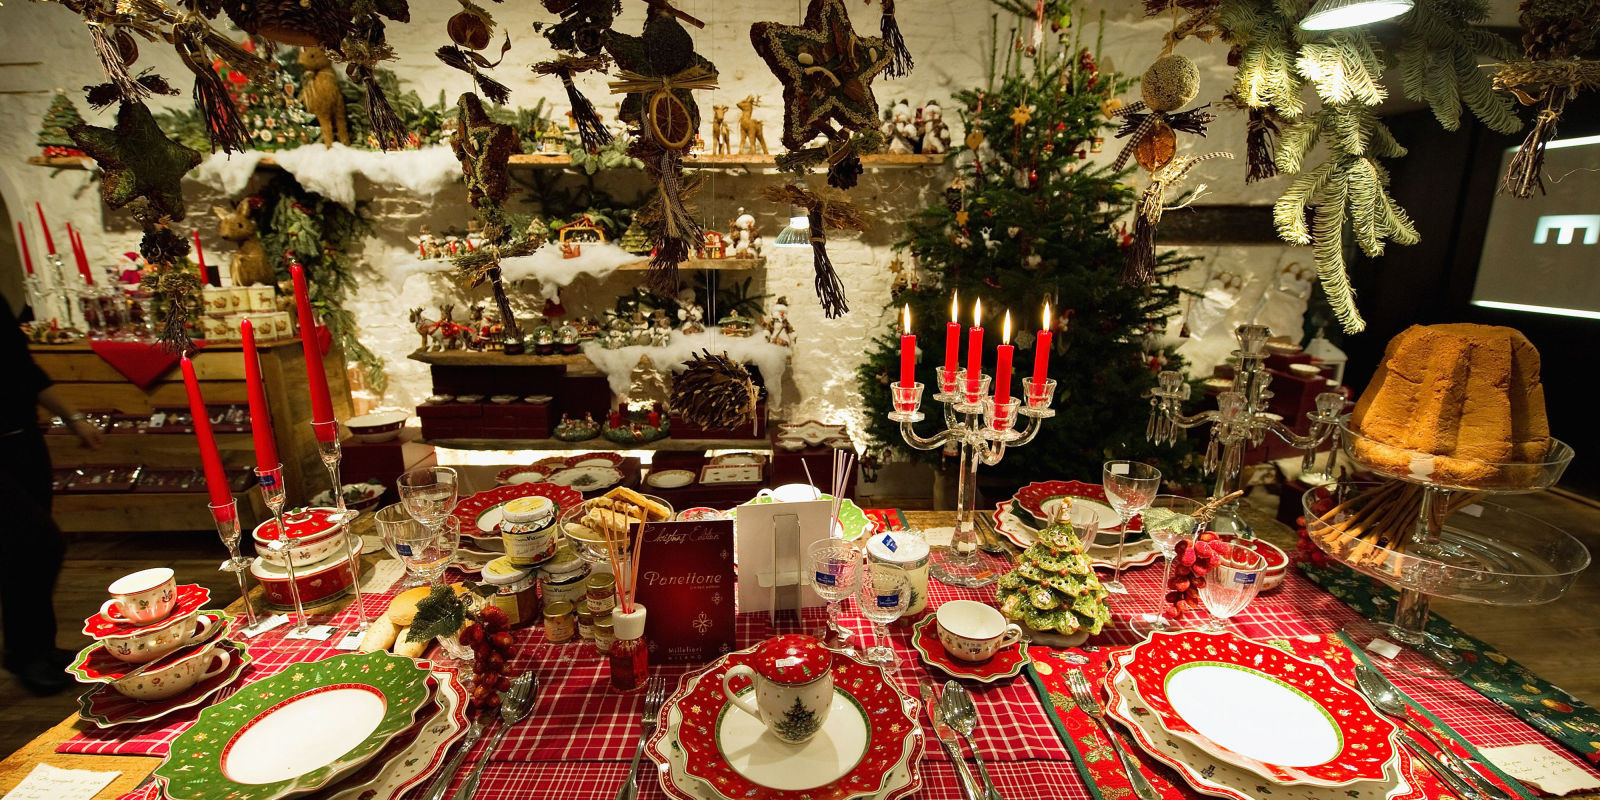 Christmas Theme Dinners  10 Christmas Table Settings 2016 Decoration Ideas for